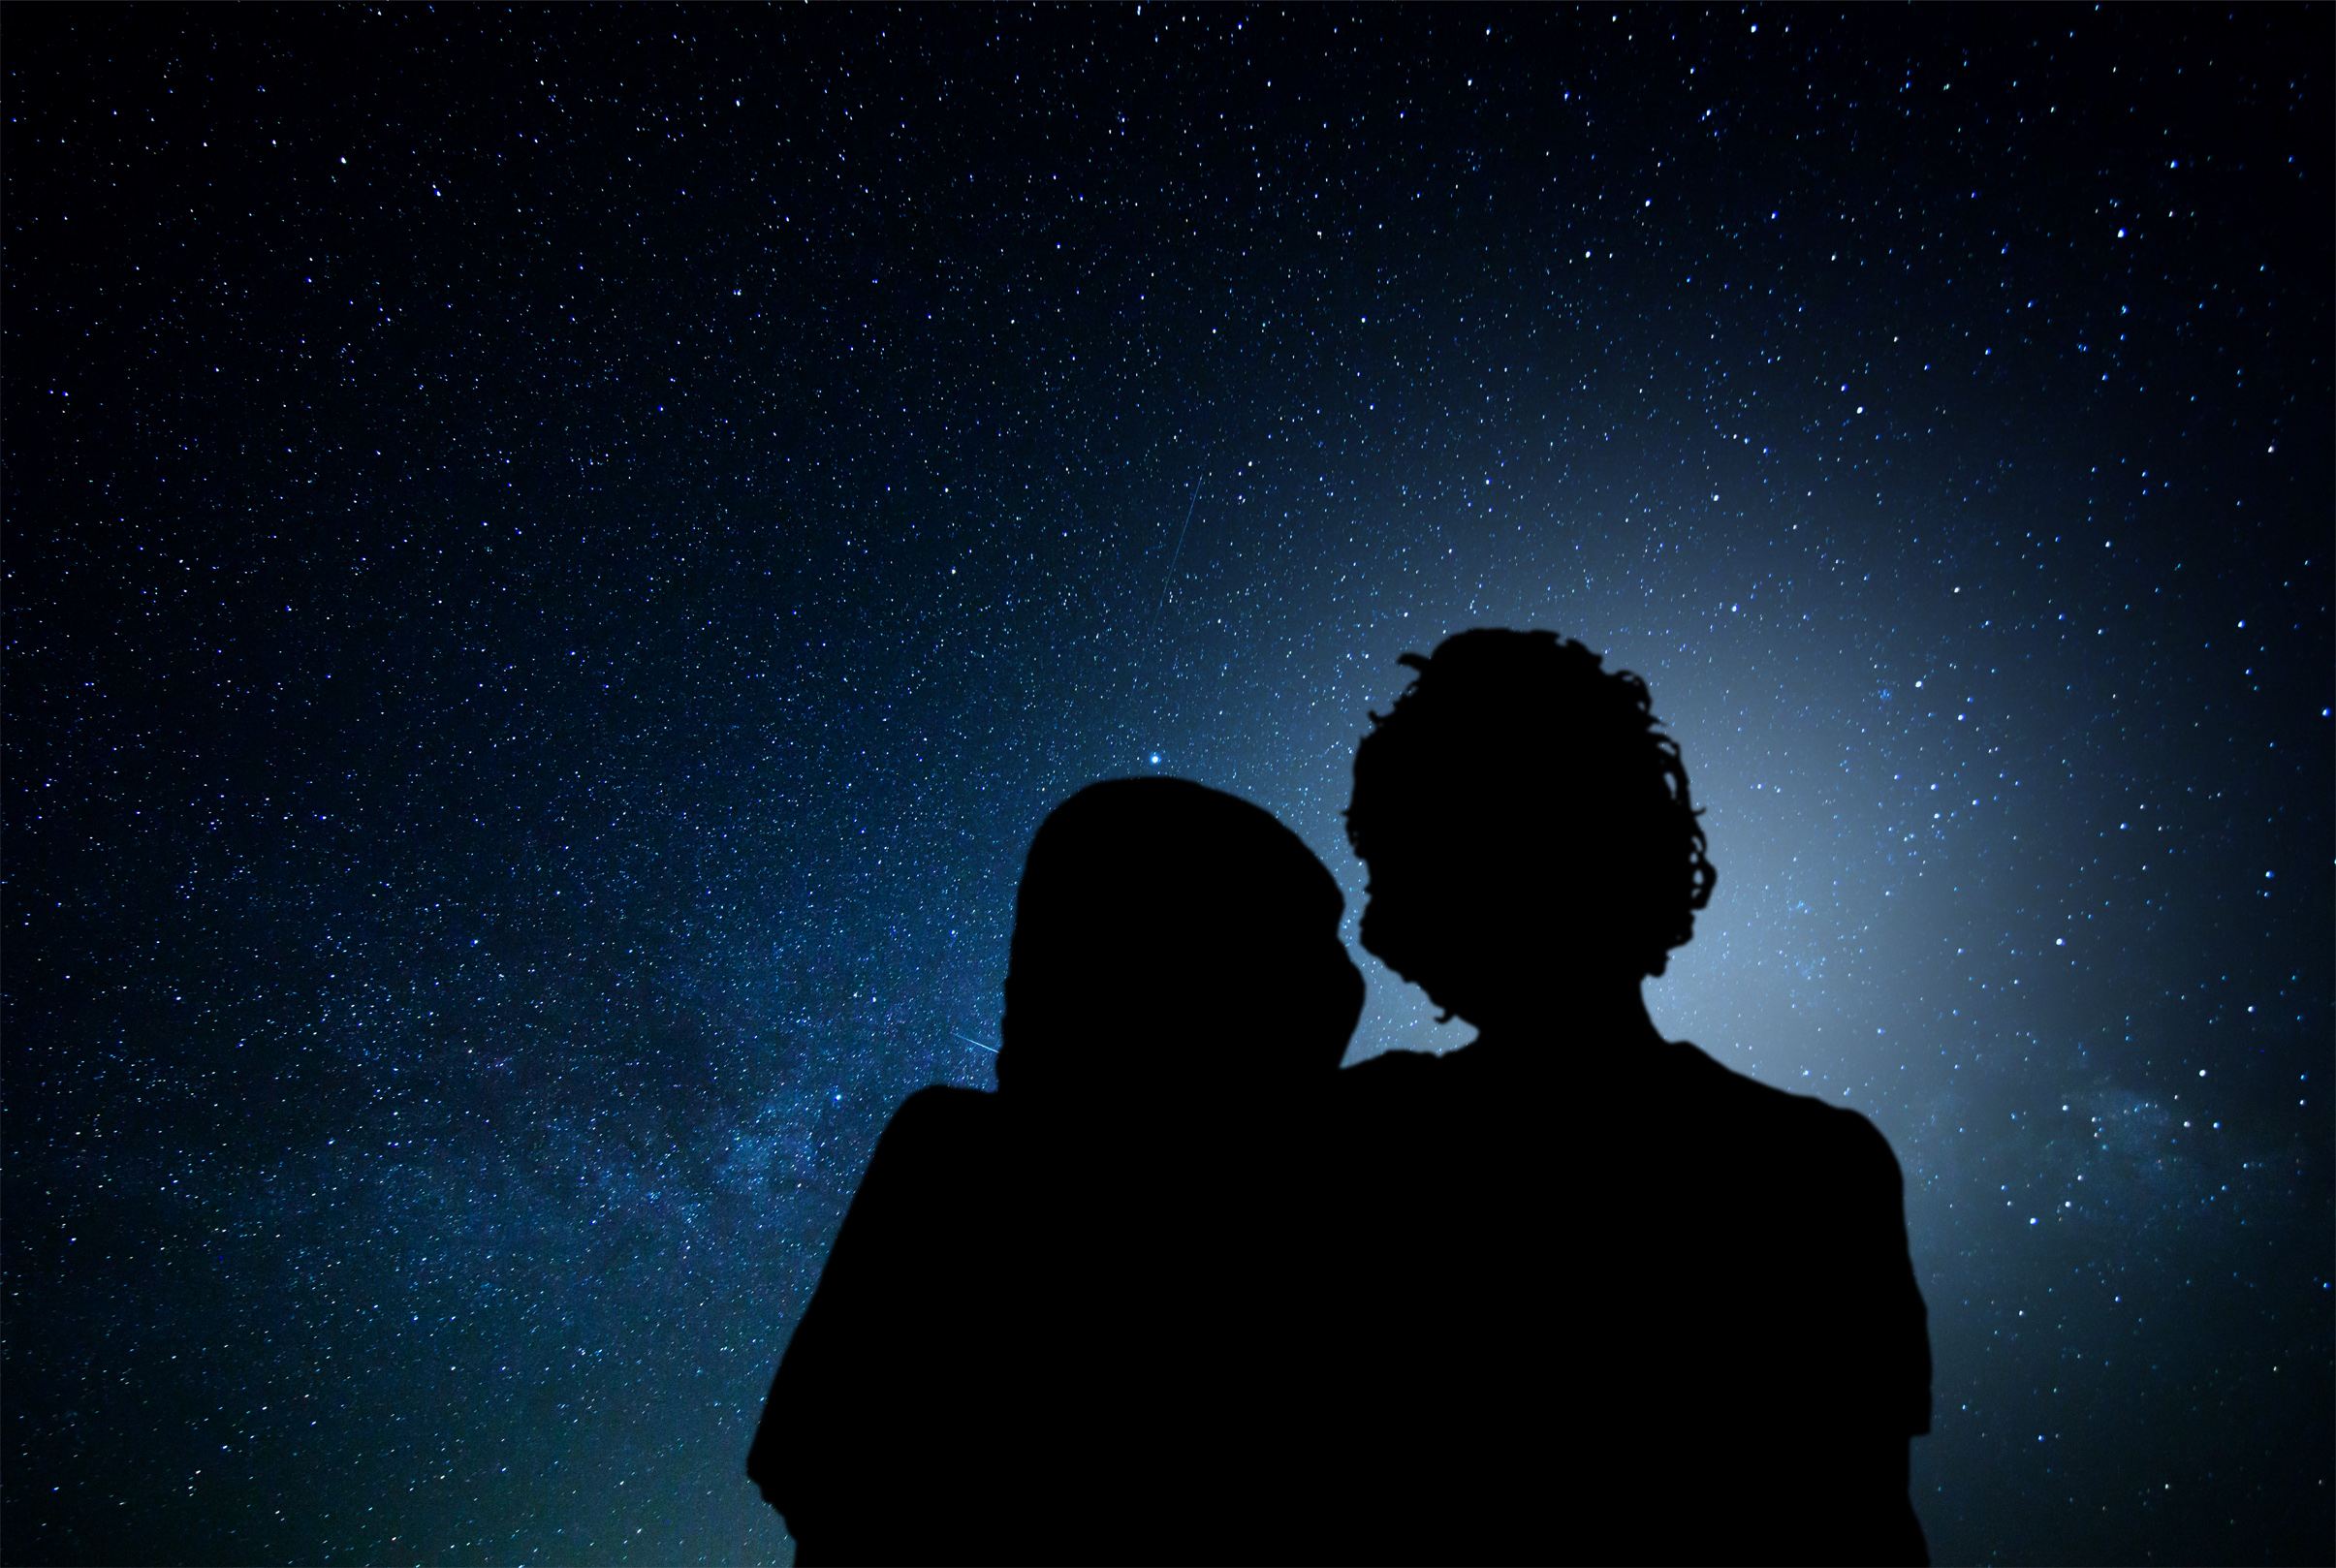 Romantic couple watching the stars photo